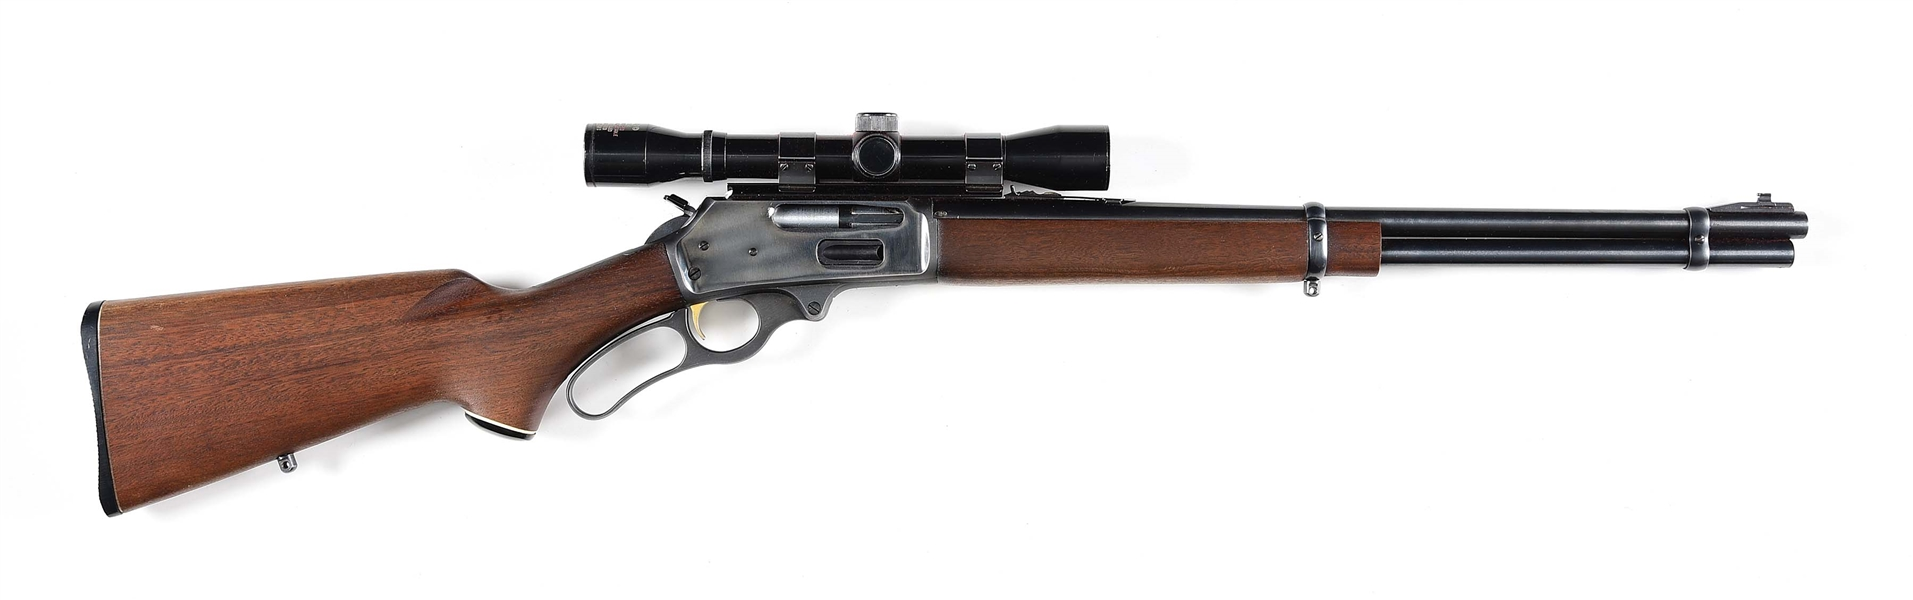 (C) MARLIN MODEL 336 .35 REMINGTON LEVER ACTION RIFLE (1965).